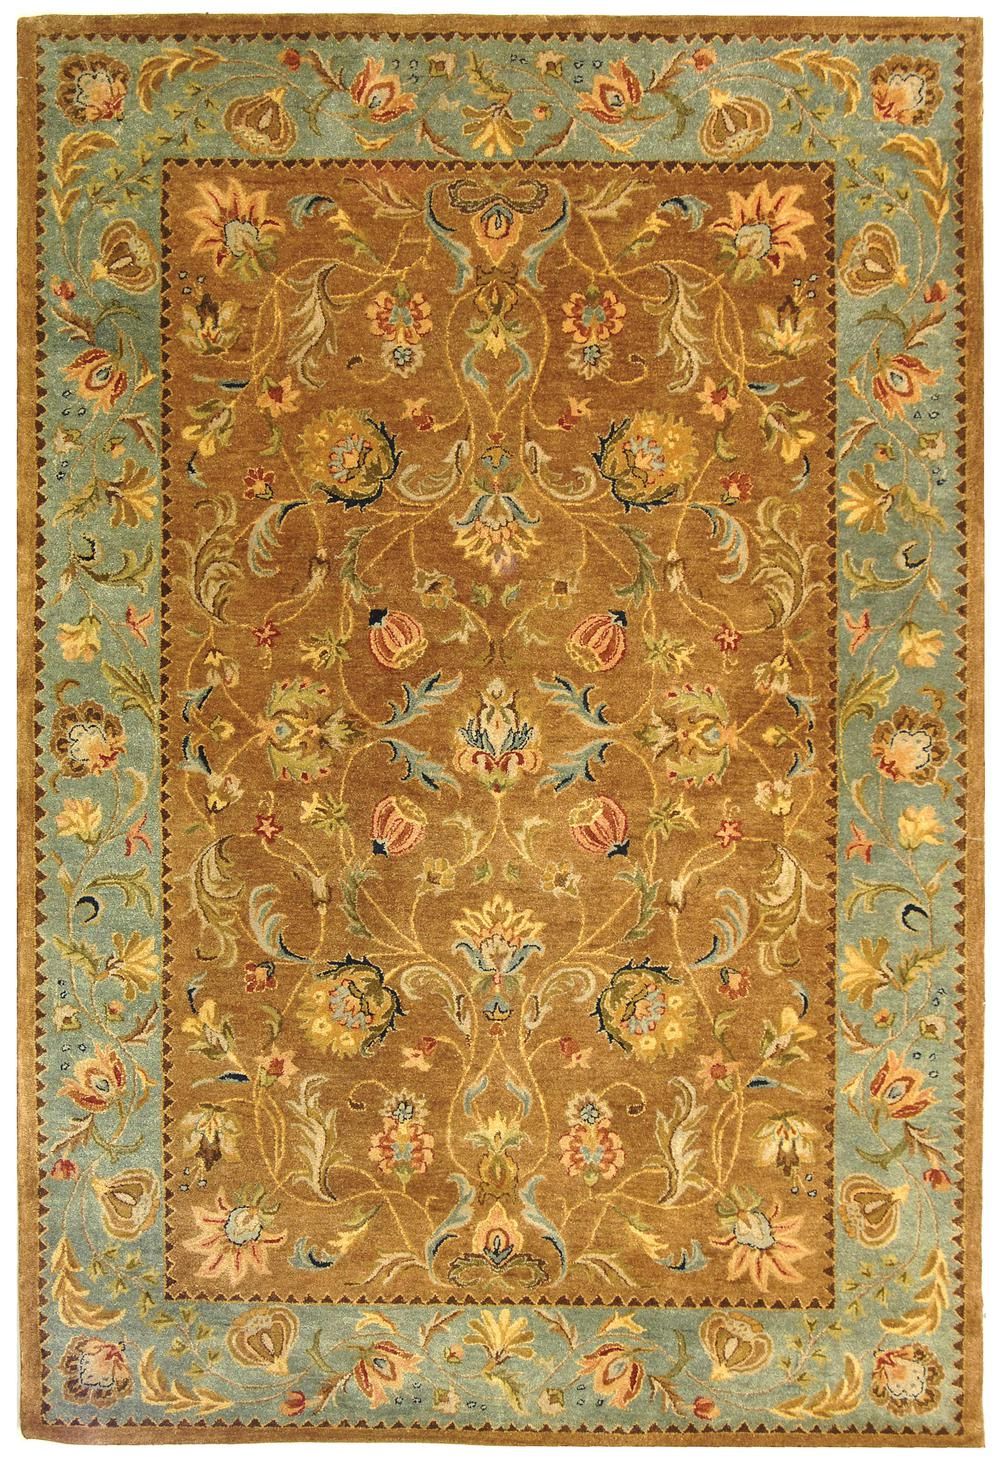 Safavieh Bergama Brg161a Brown And Blue Area Rug Free